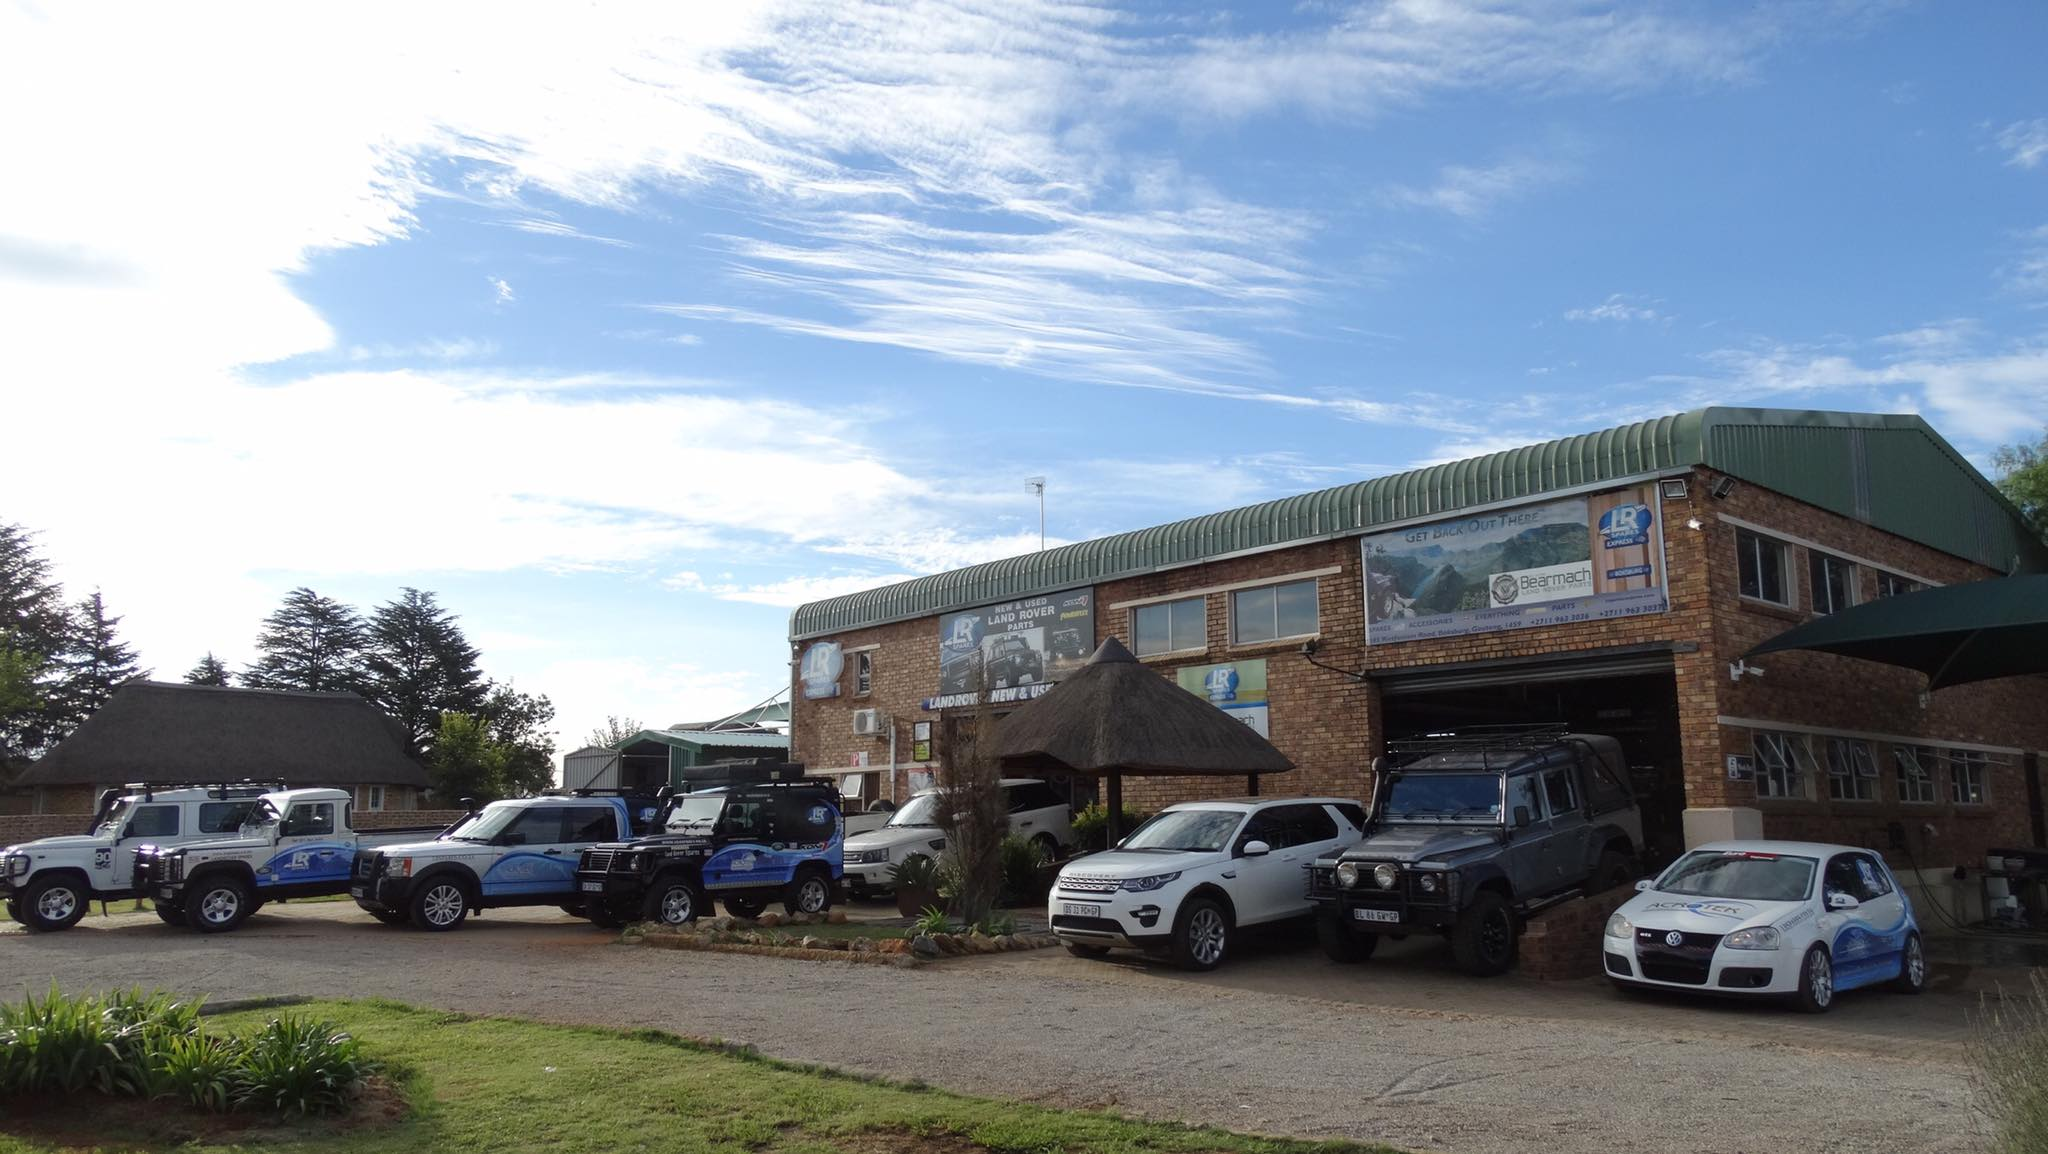 Used Approved Land Rover >> Land Rover Workshop, Repair Service & Maintenance Centre